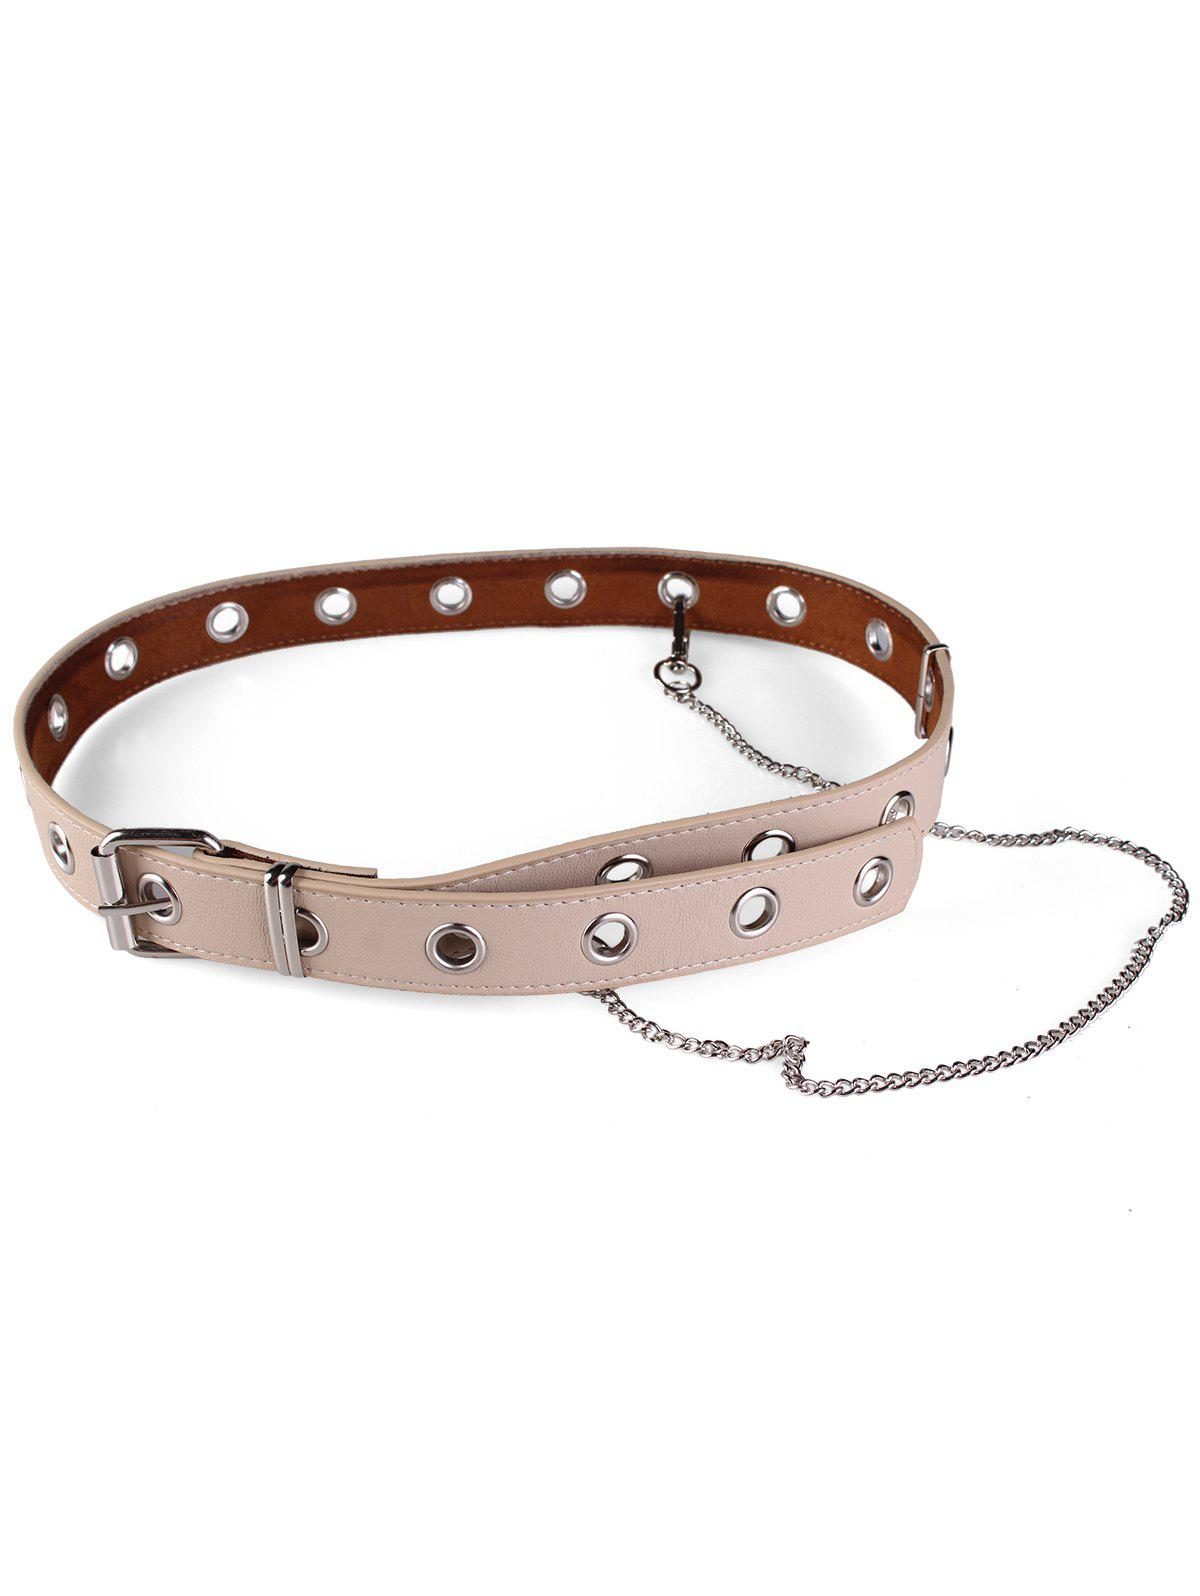 Punk Faux Leather Metal Chains Waist Belt - LIGHT KHAKI